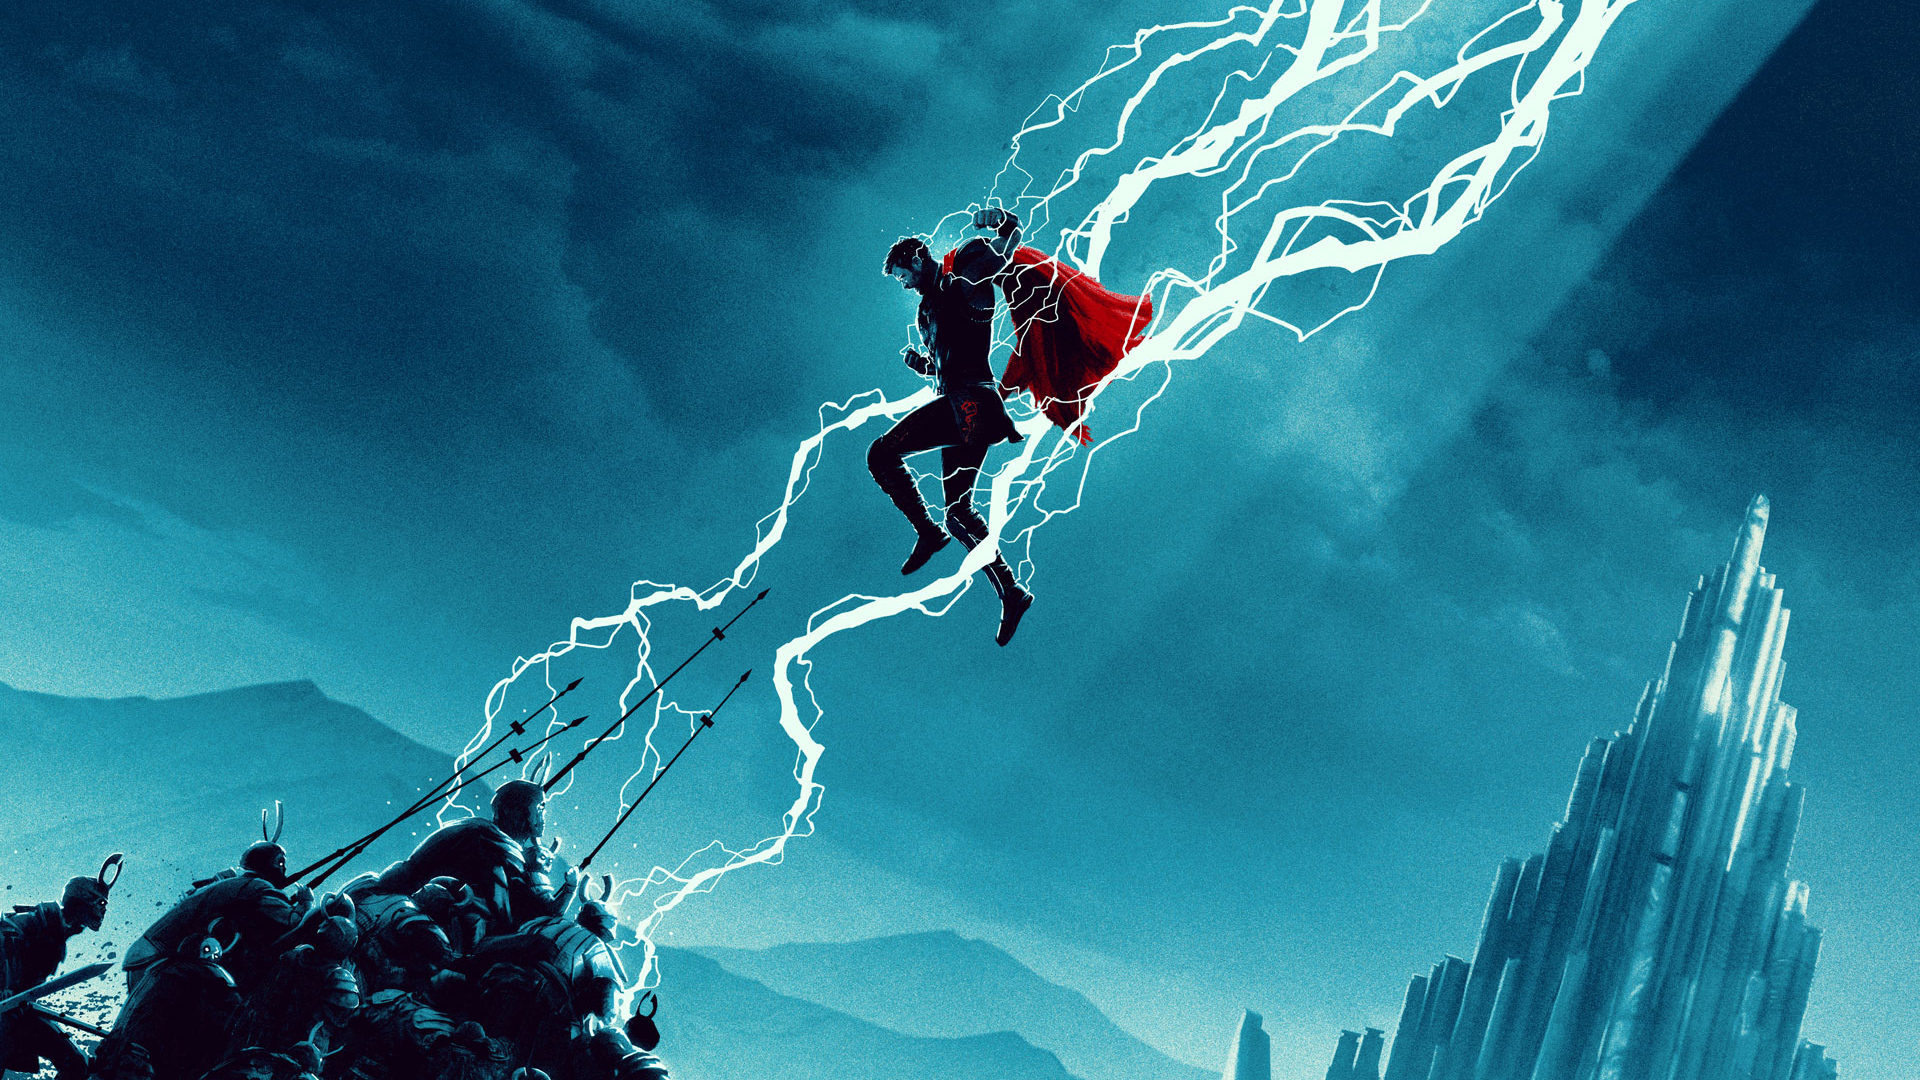 Thor Pictures Free Wallpaper: Thor: Ragnarok HD Wallpapers, Pictures, Images